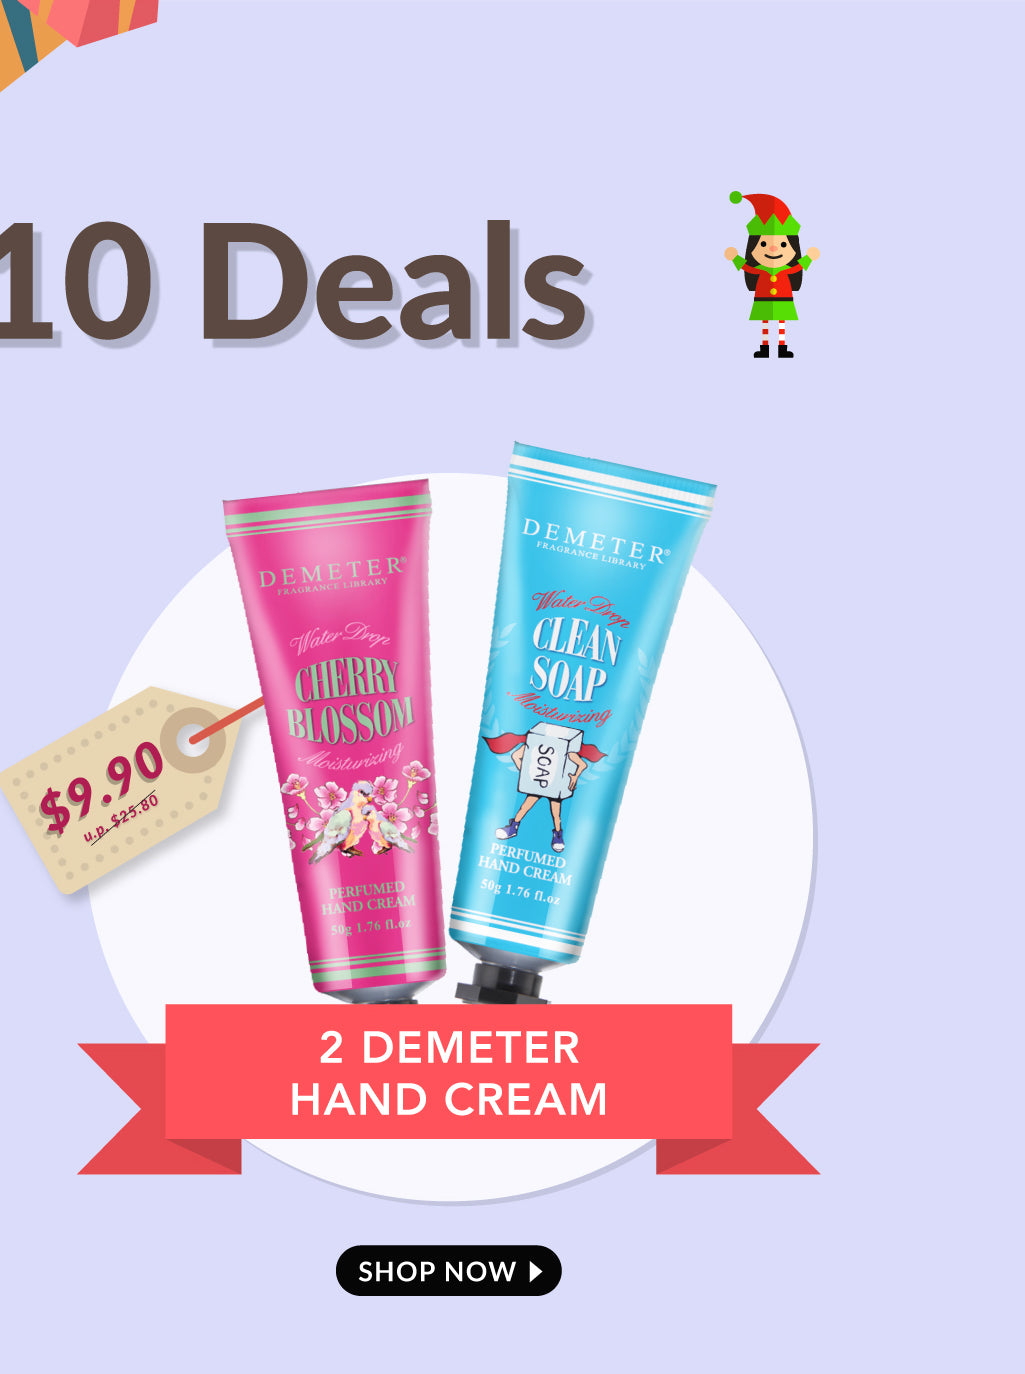 Demeter Hand Cream 2 For 9.90